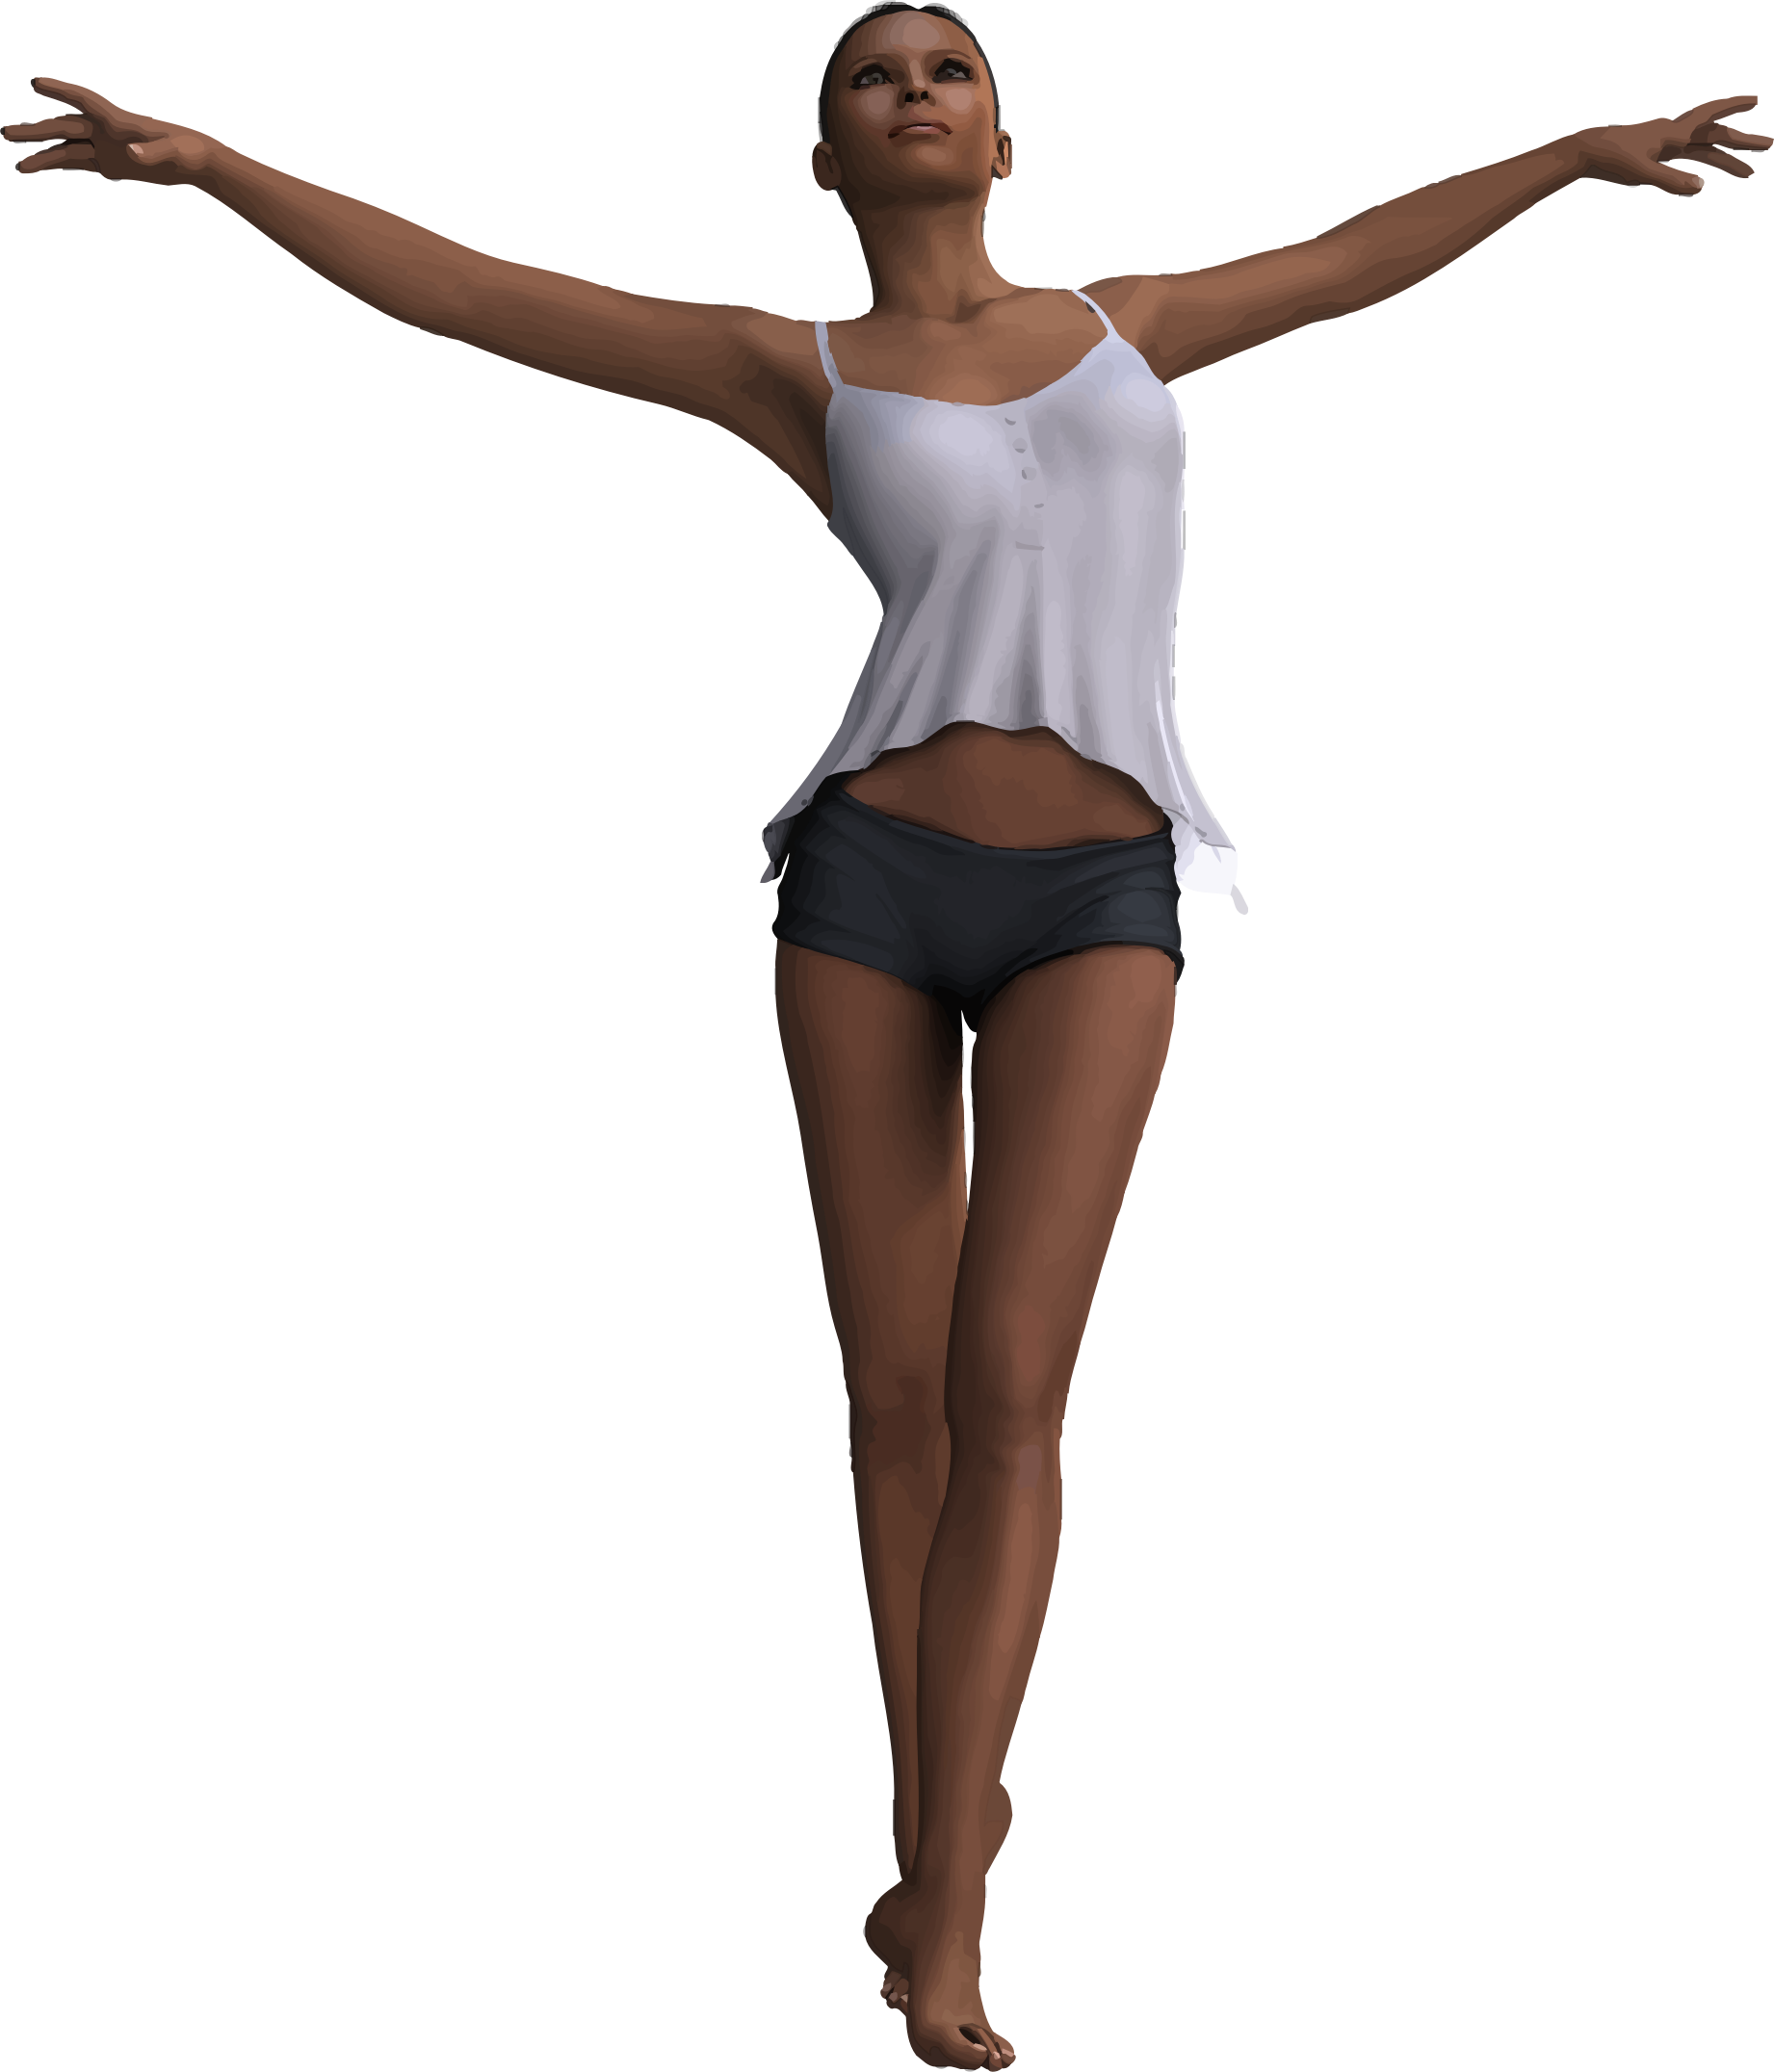 Clipart woman with outstretched. Girl arms png picture freeuse download